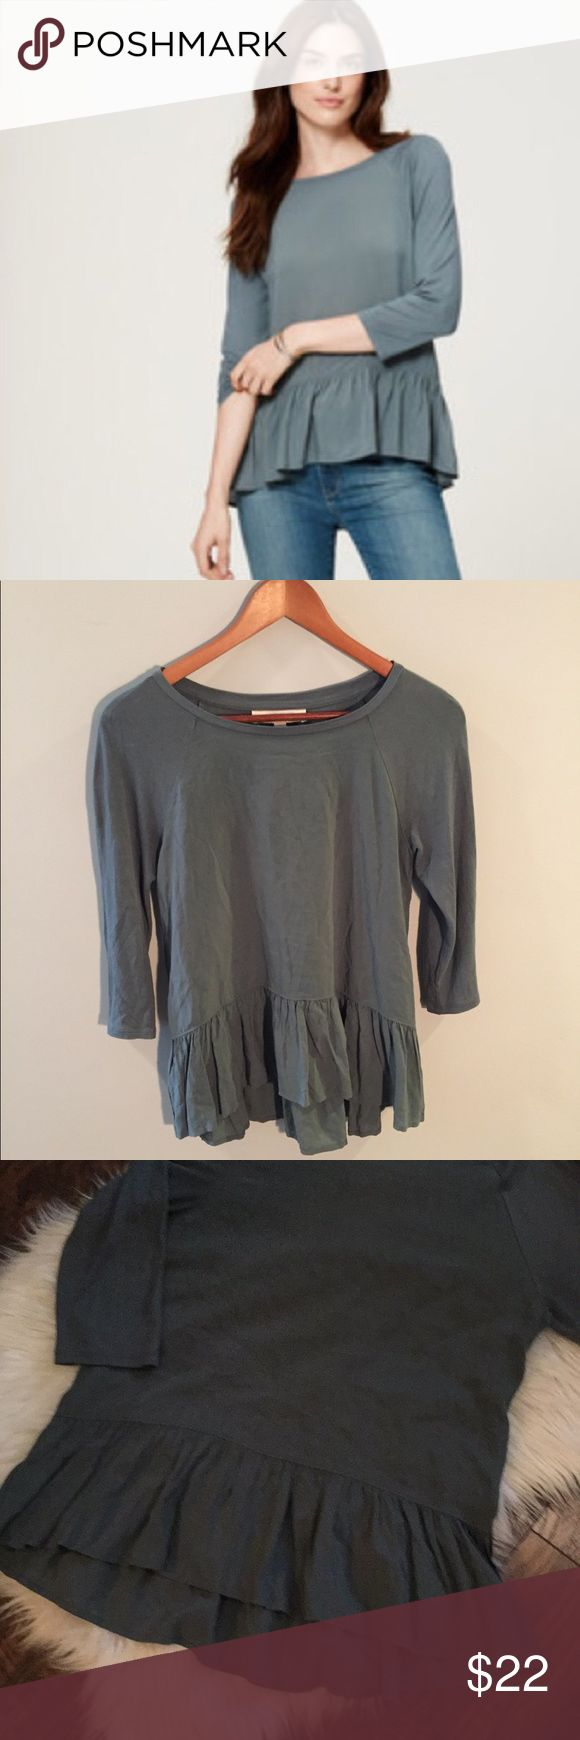 "•LOFT• Mixed Media Peplum Top in Green LOFT Mixed Media Peplum Top in Green. In Excellent Used Condition. Fluid woven panels meet a soft knit for the ultimate mix up- with a flirty Peplum Hem. Round Neck, 3/4 Sleeves.  When Laying Flat: Bust Measures Approximately 16.5"" Across, Length 24"" LOFT Tops"